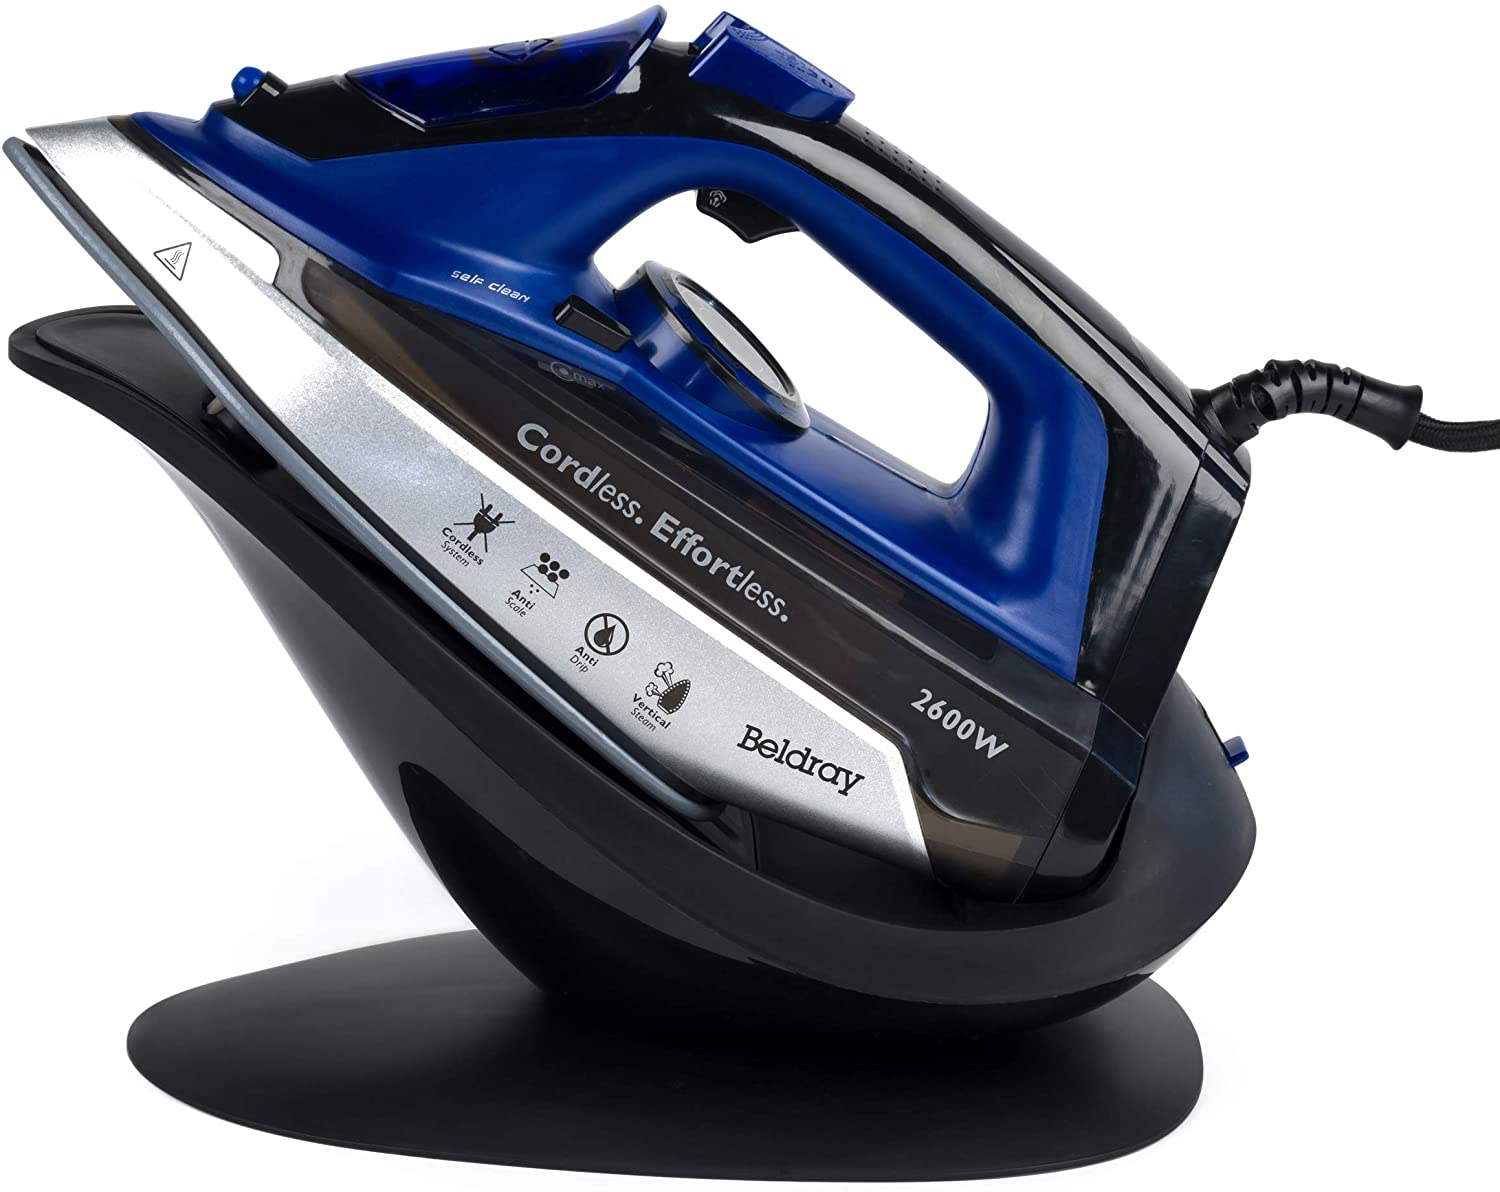 Beldray BEL0747 Cordless Steam Iron – Most Selling